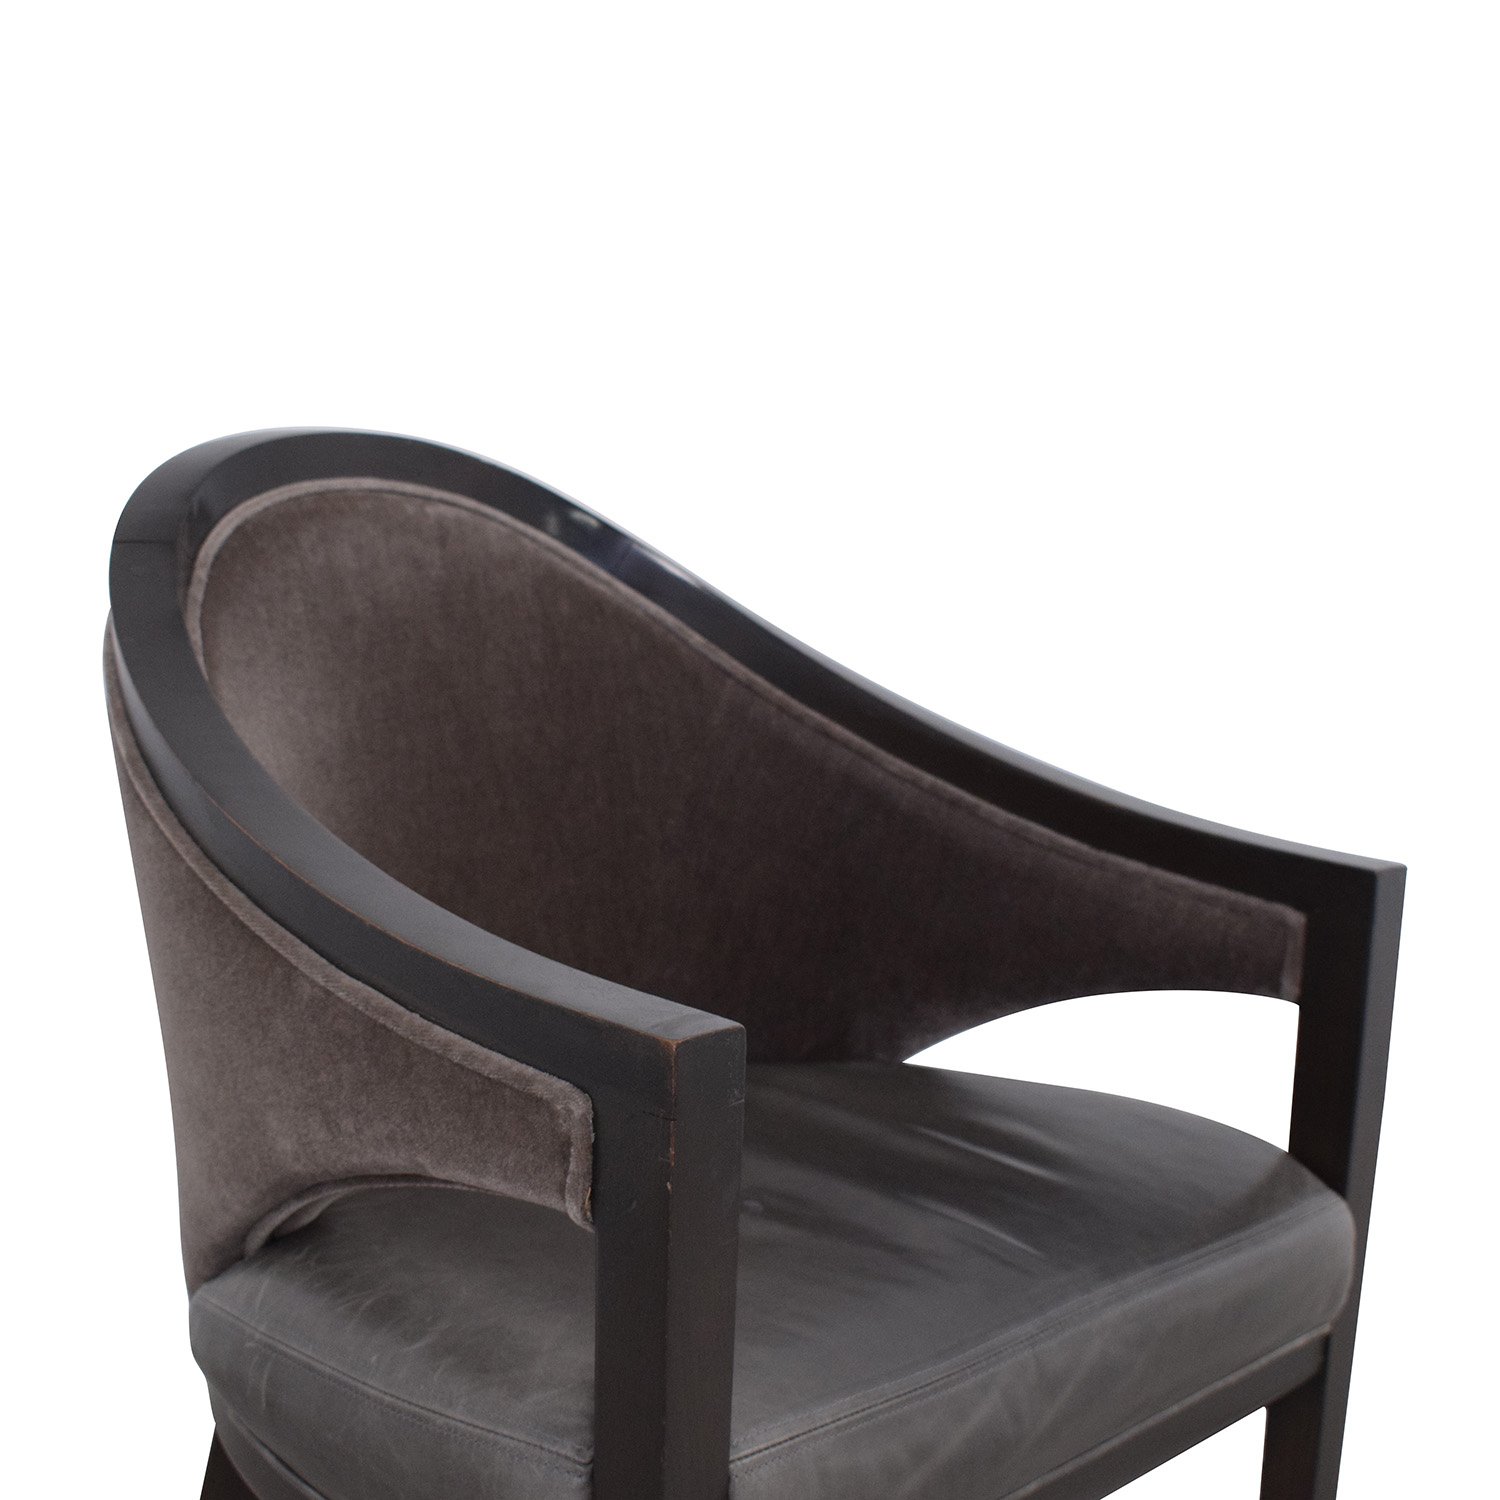 Allied Works Dining Room Chair / Dining Chairs